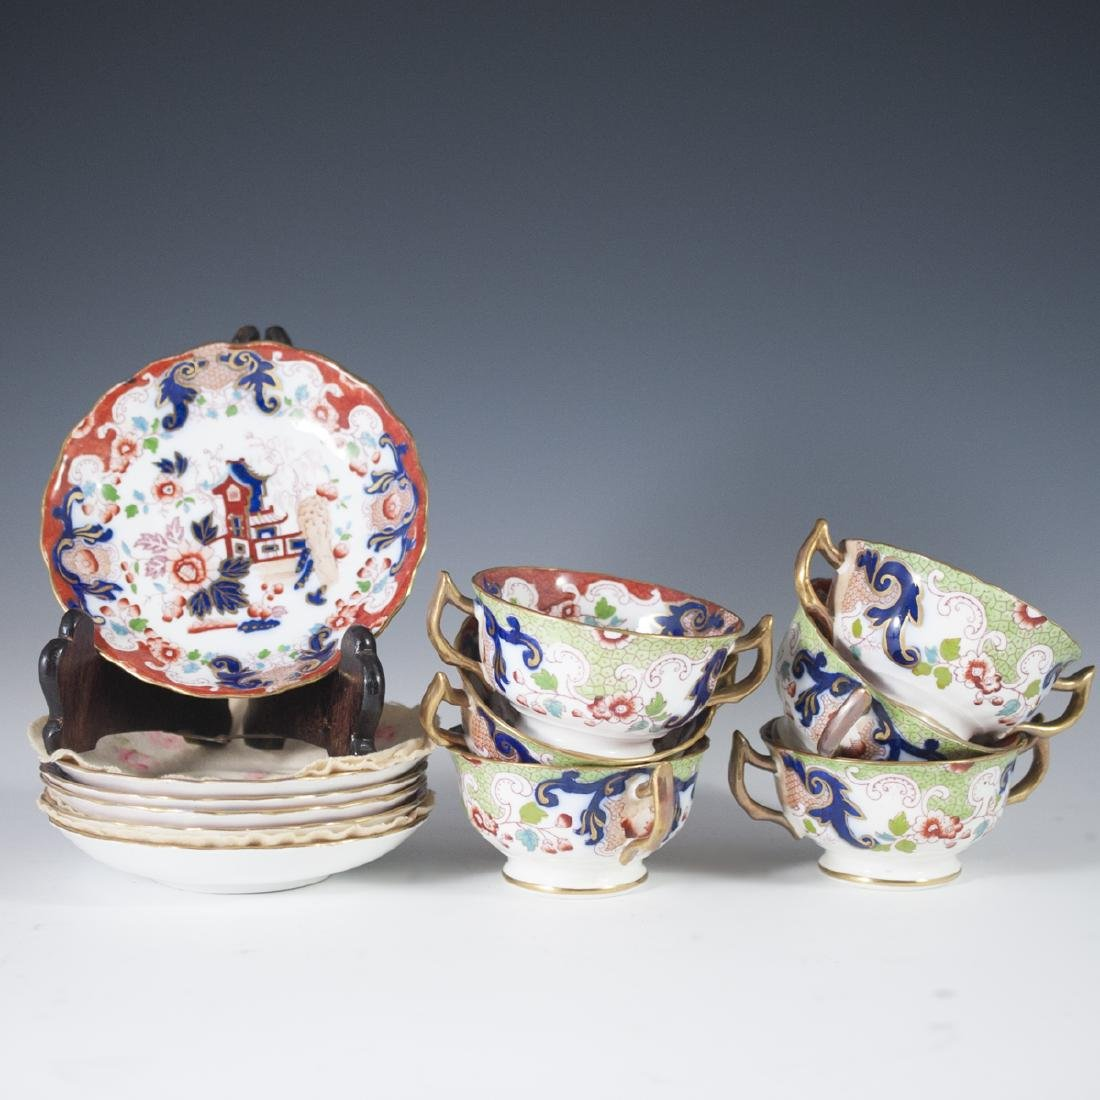 Derby Imari Porcelain Tea Set